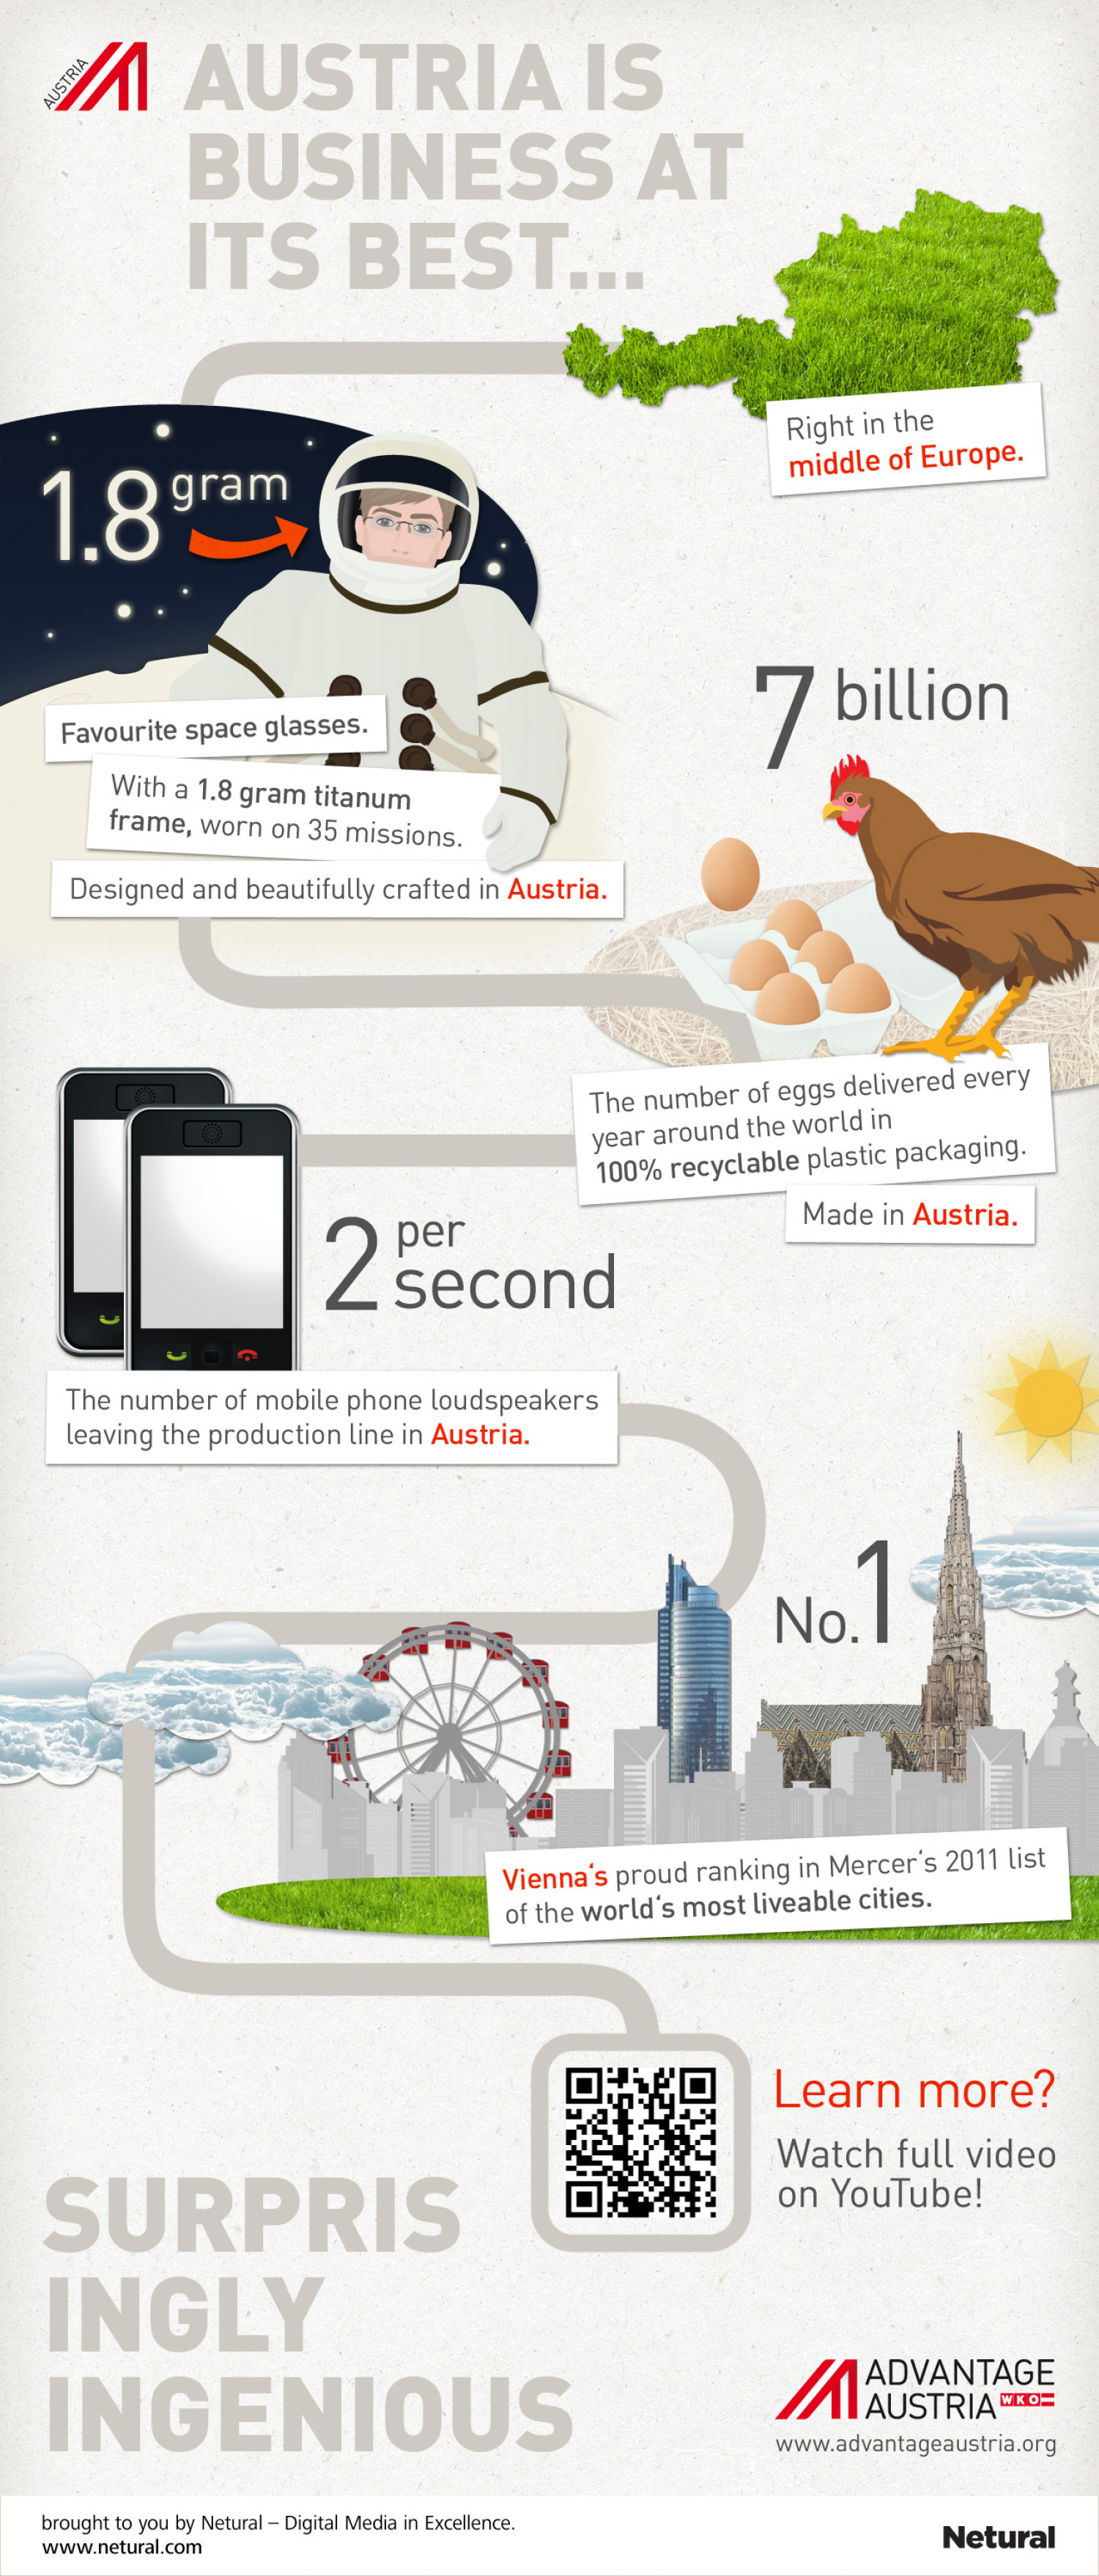 Austria is Business at its Best Infographic